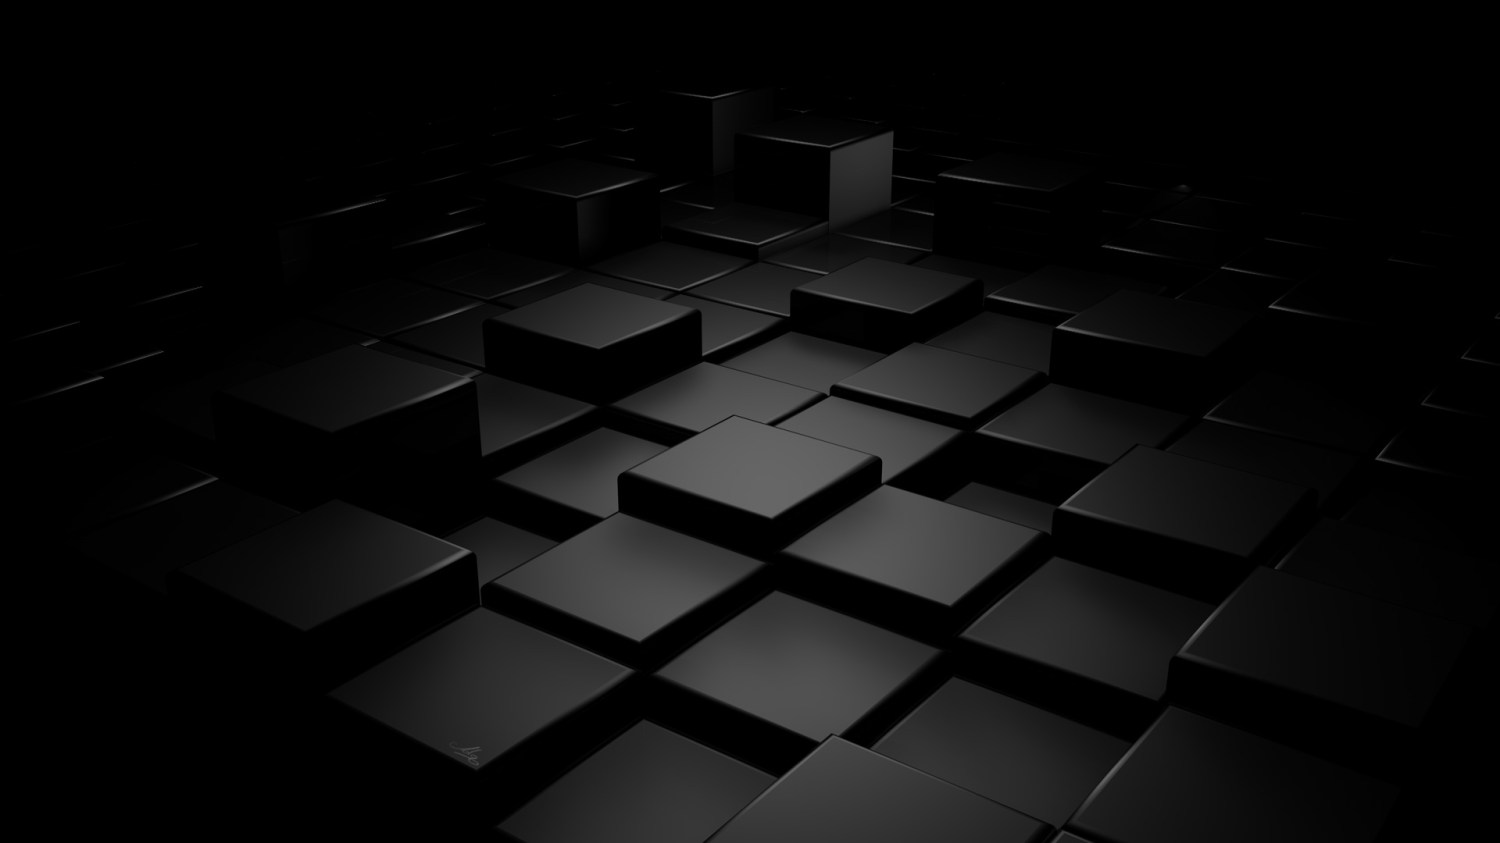 rendering-shapes-visualization-cubes-abstraction-figures-black-background